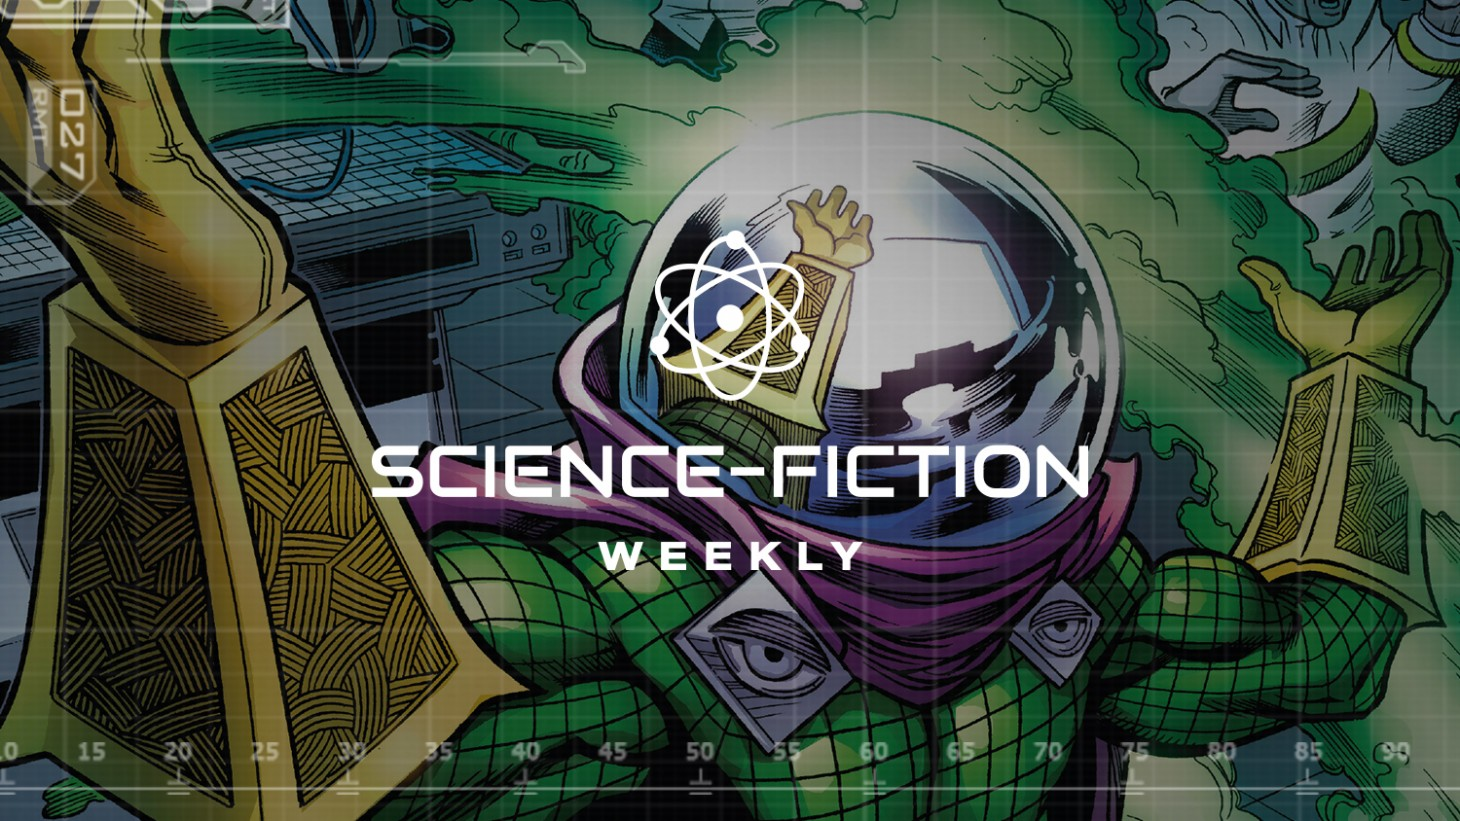 Science-Fiction Weekly – Spider-Man, Weird City, Atom RPG ...